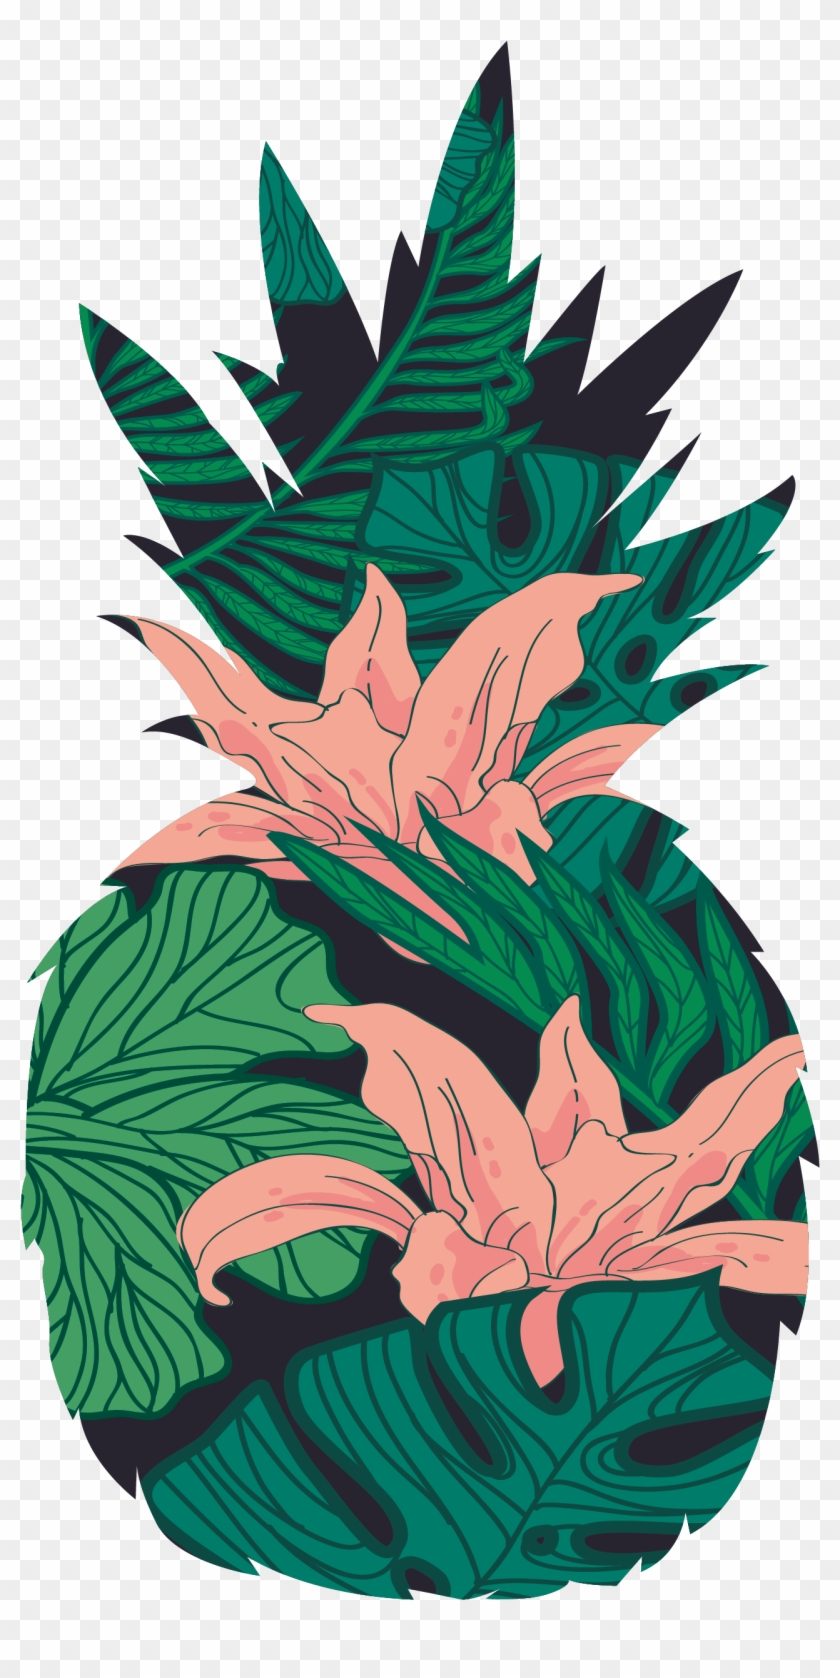 Tropical Flower Pineapple Pattern - Tropical Illustration Png #291708